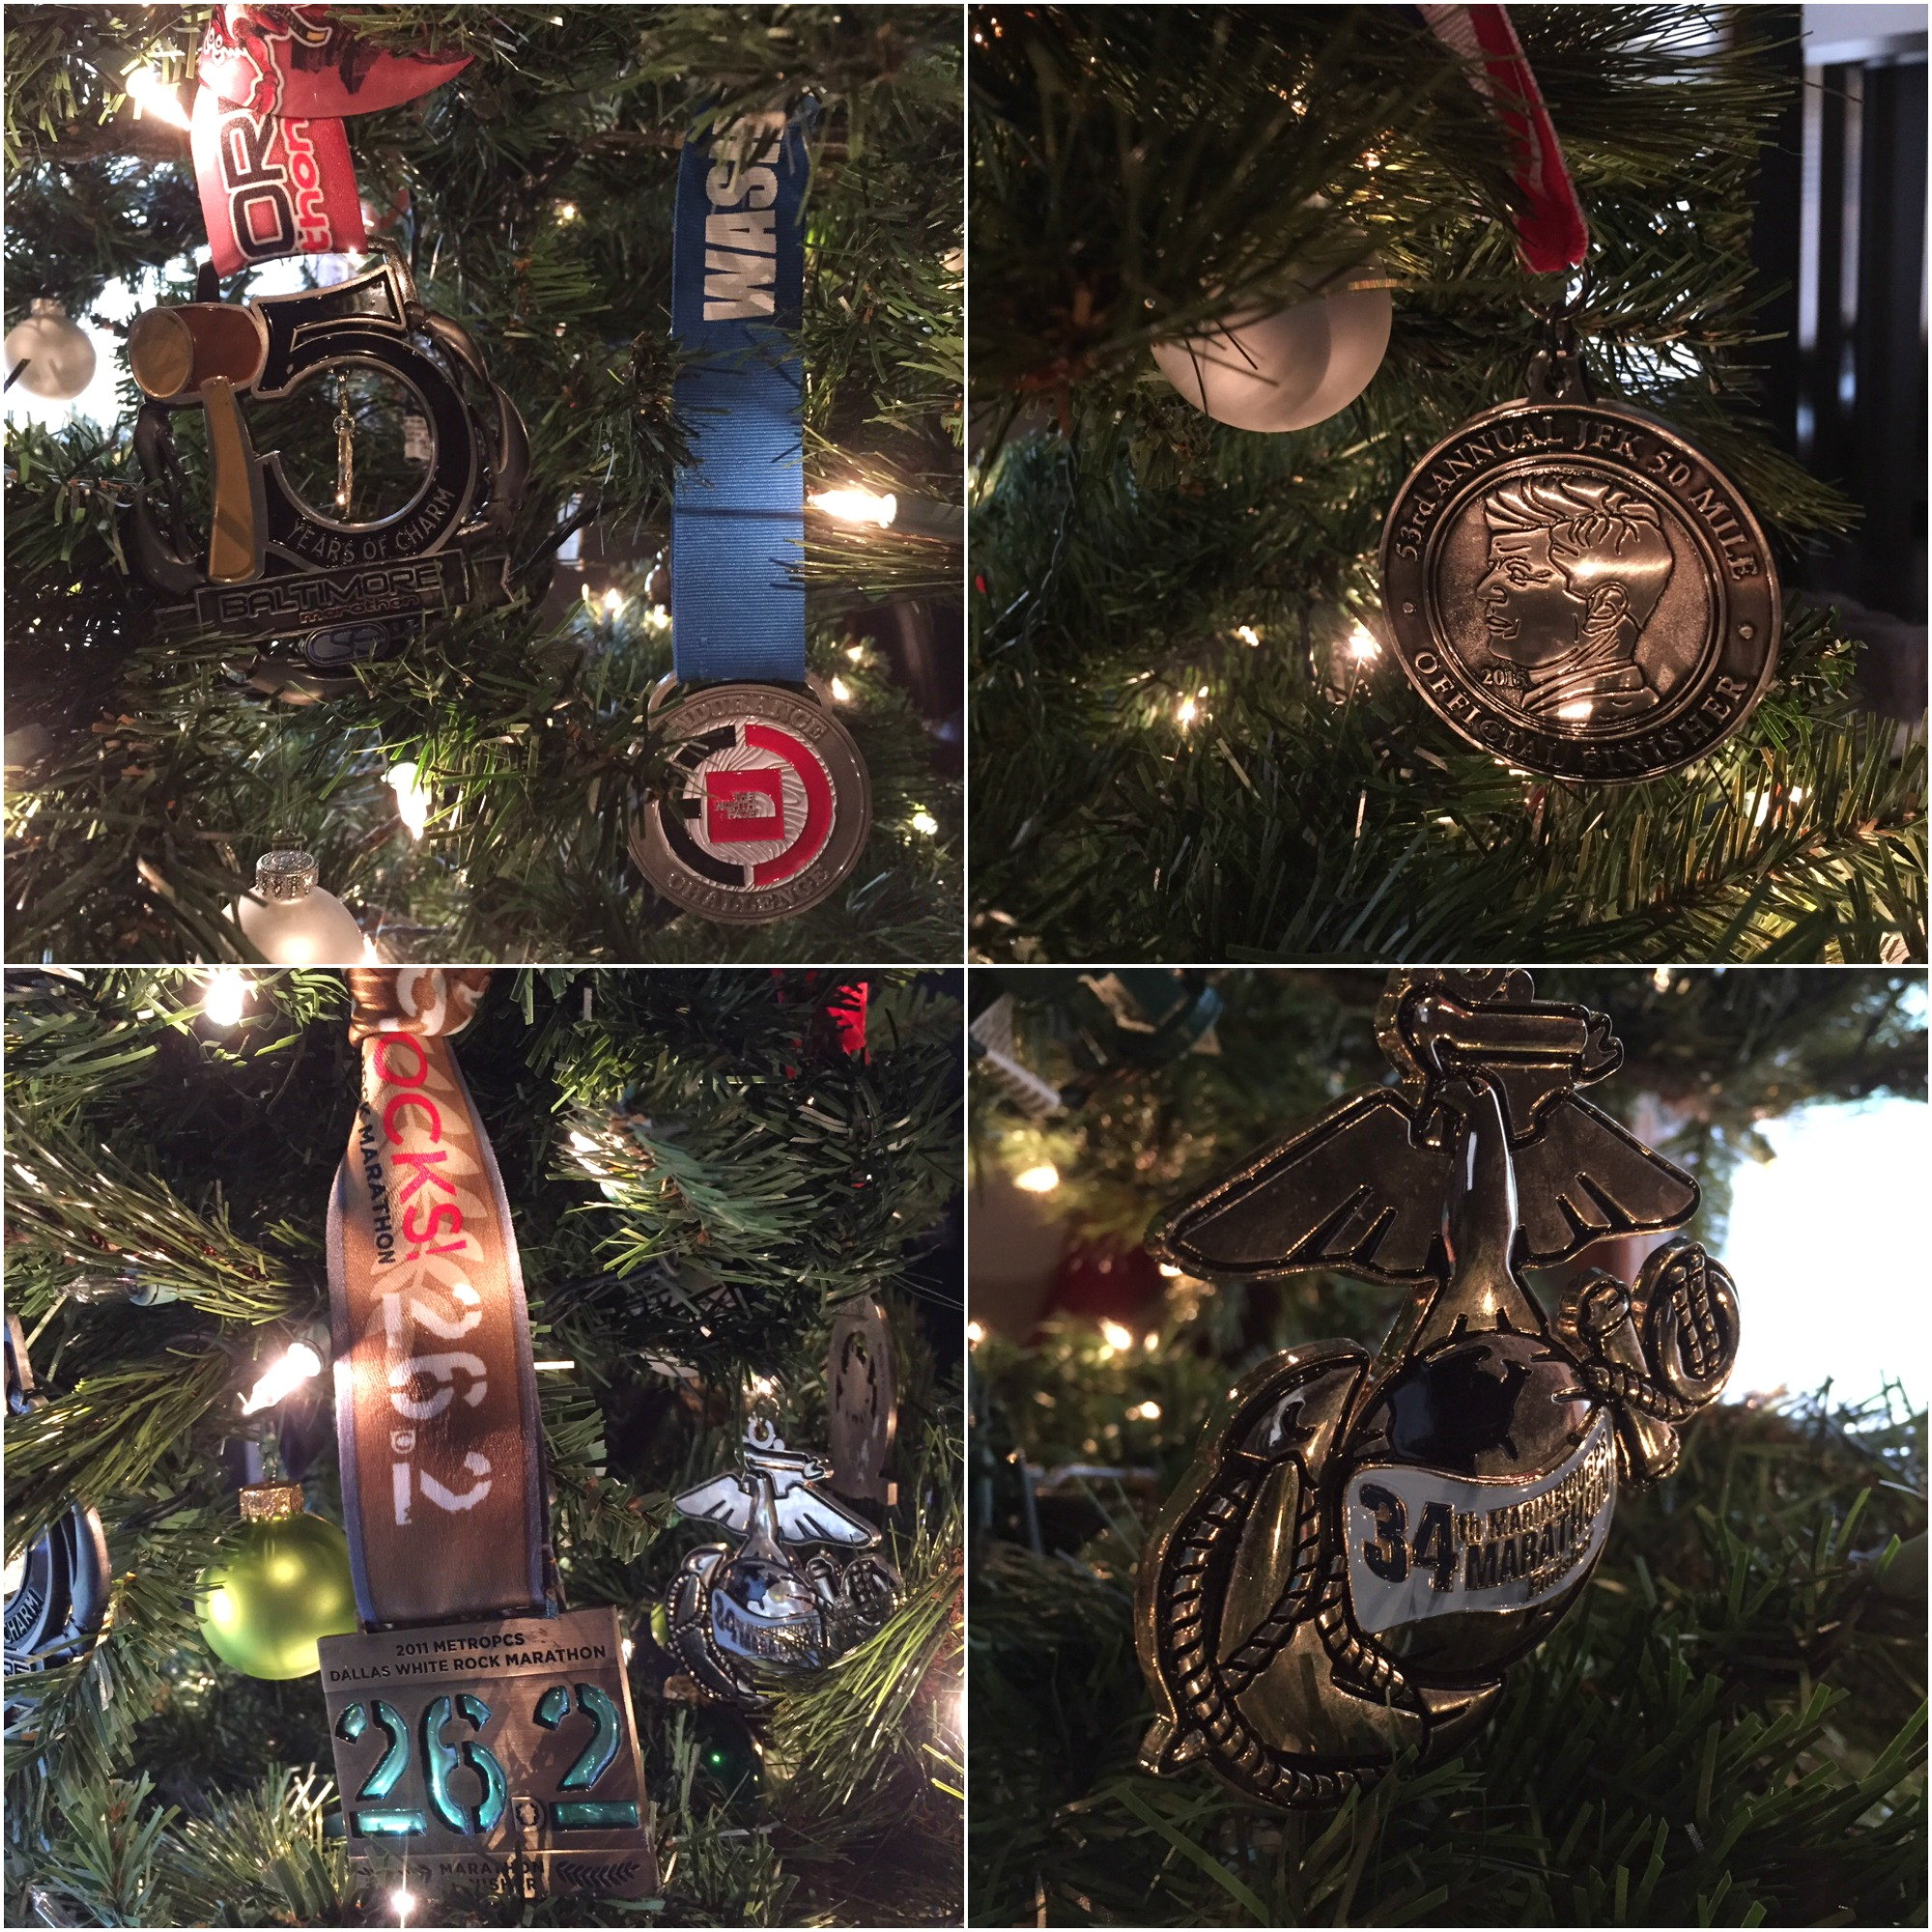 Christmas decor, aka race medals clockwise from top left: 2015 Baltimore Marathon and 2015 North Face Endurance 50K; 2015 JFK 50-miler; my first marathon, the Marine Corps Marathon; 2011's miserable Dallas White Rock Marathon #neveragain